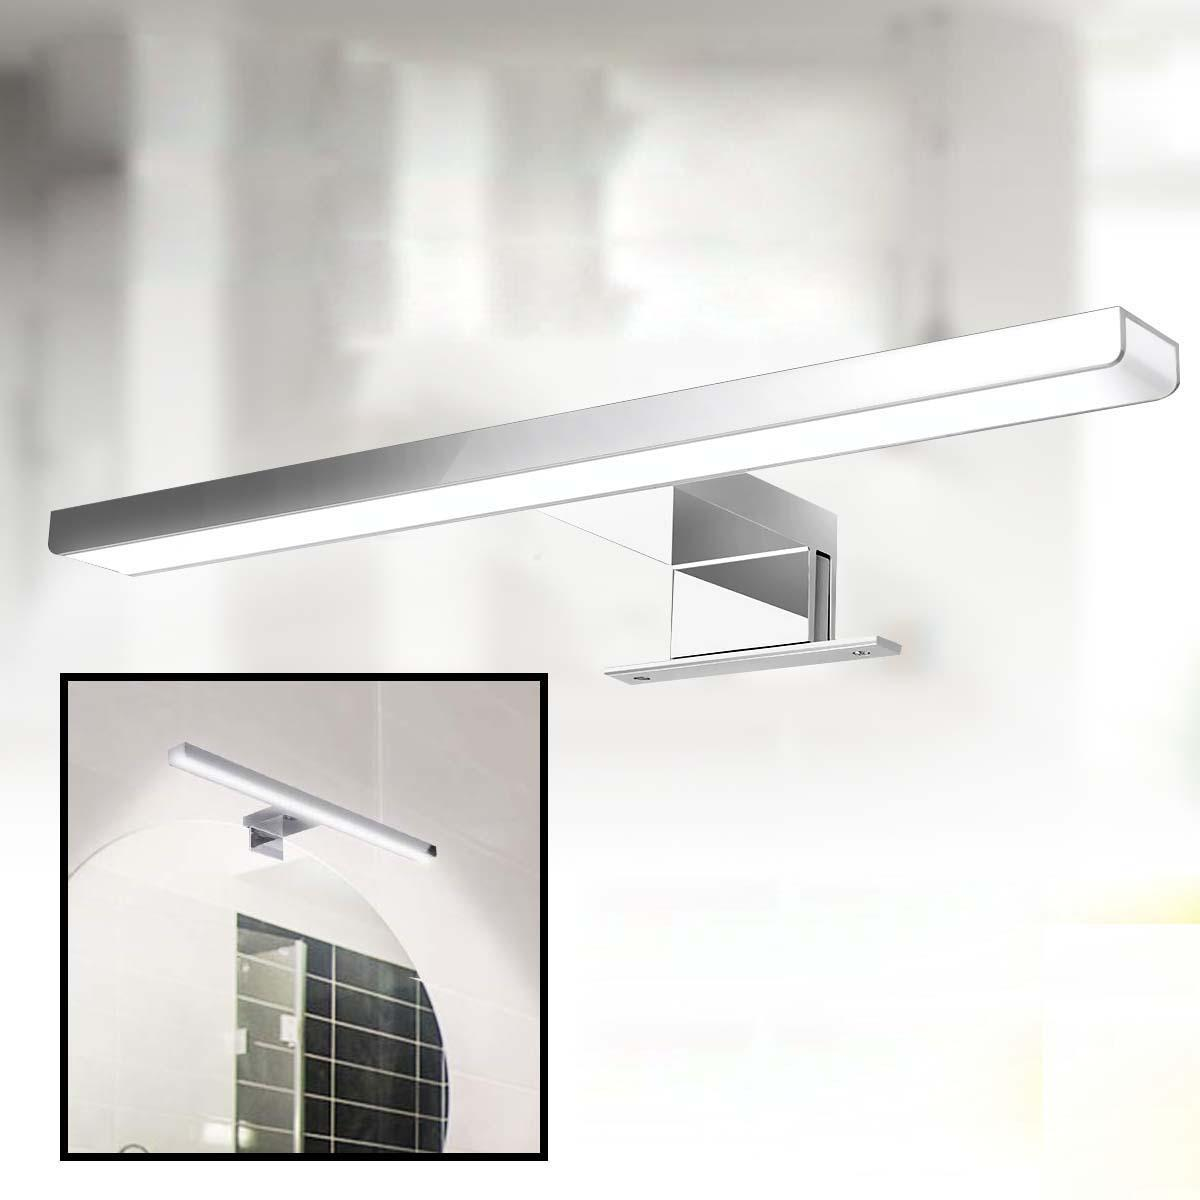 6W 600LM LED Wall Lamp Strip for Kitchen Cabinet Mirror Makeup Light AC110-240V